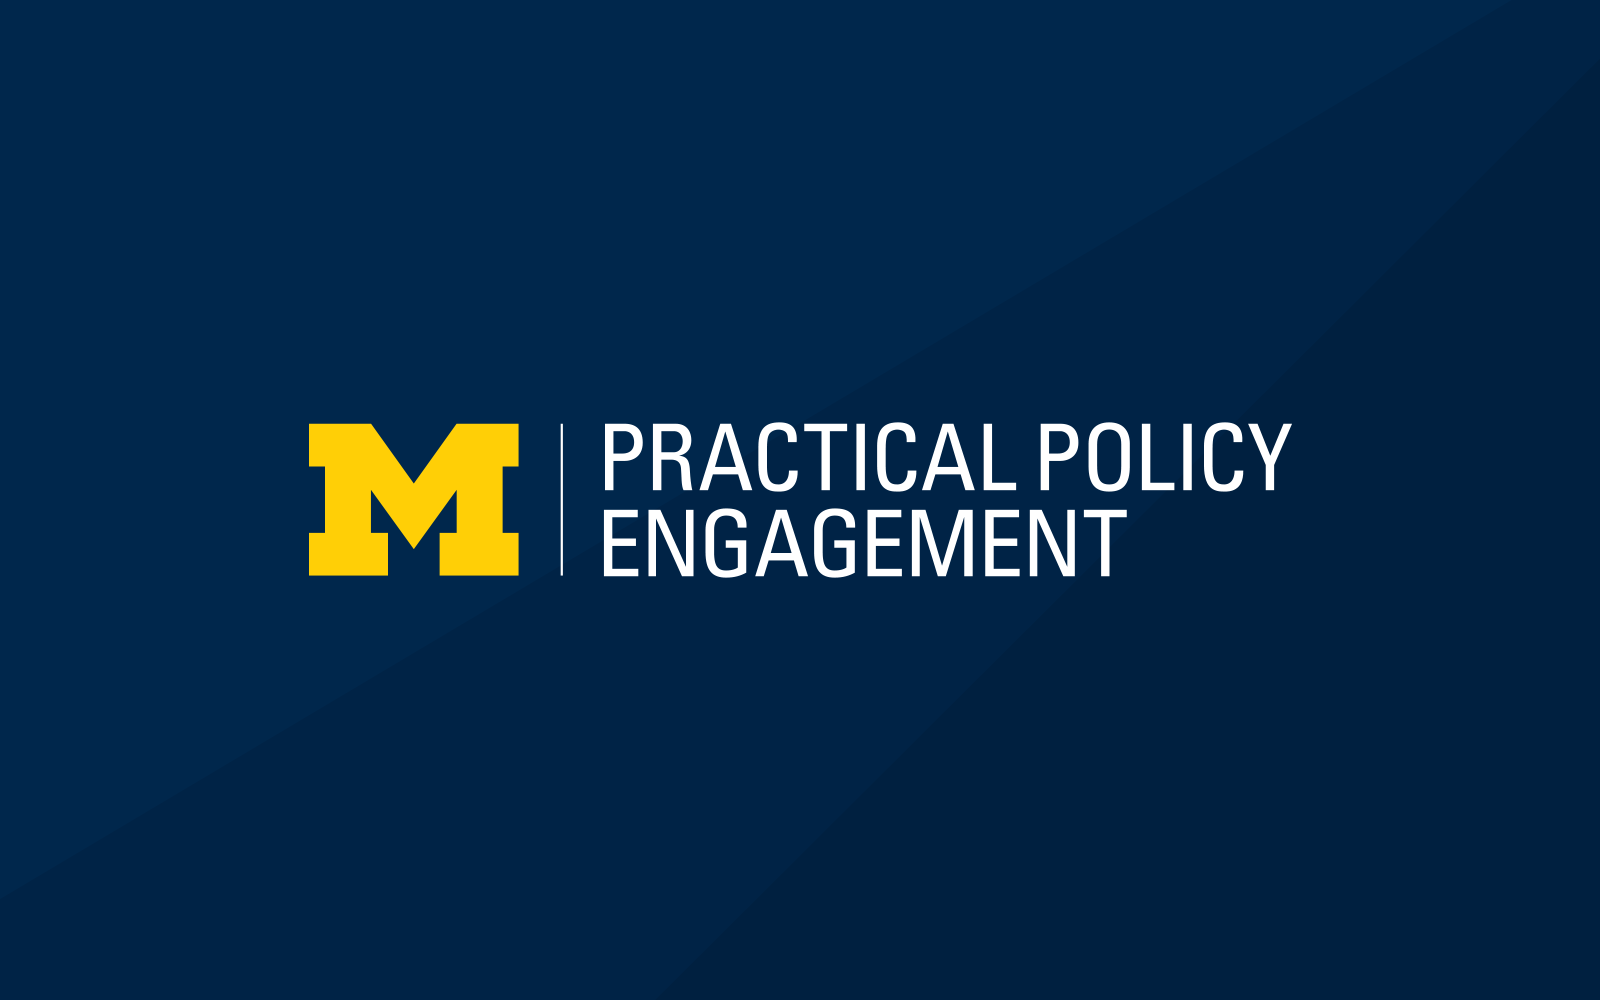 Program in Practical Policy Engagement informal logo